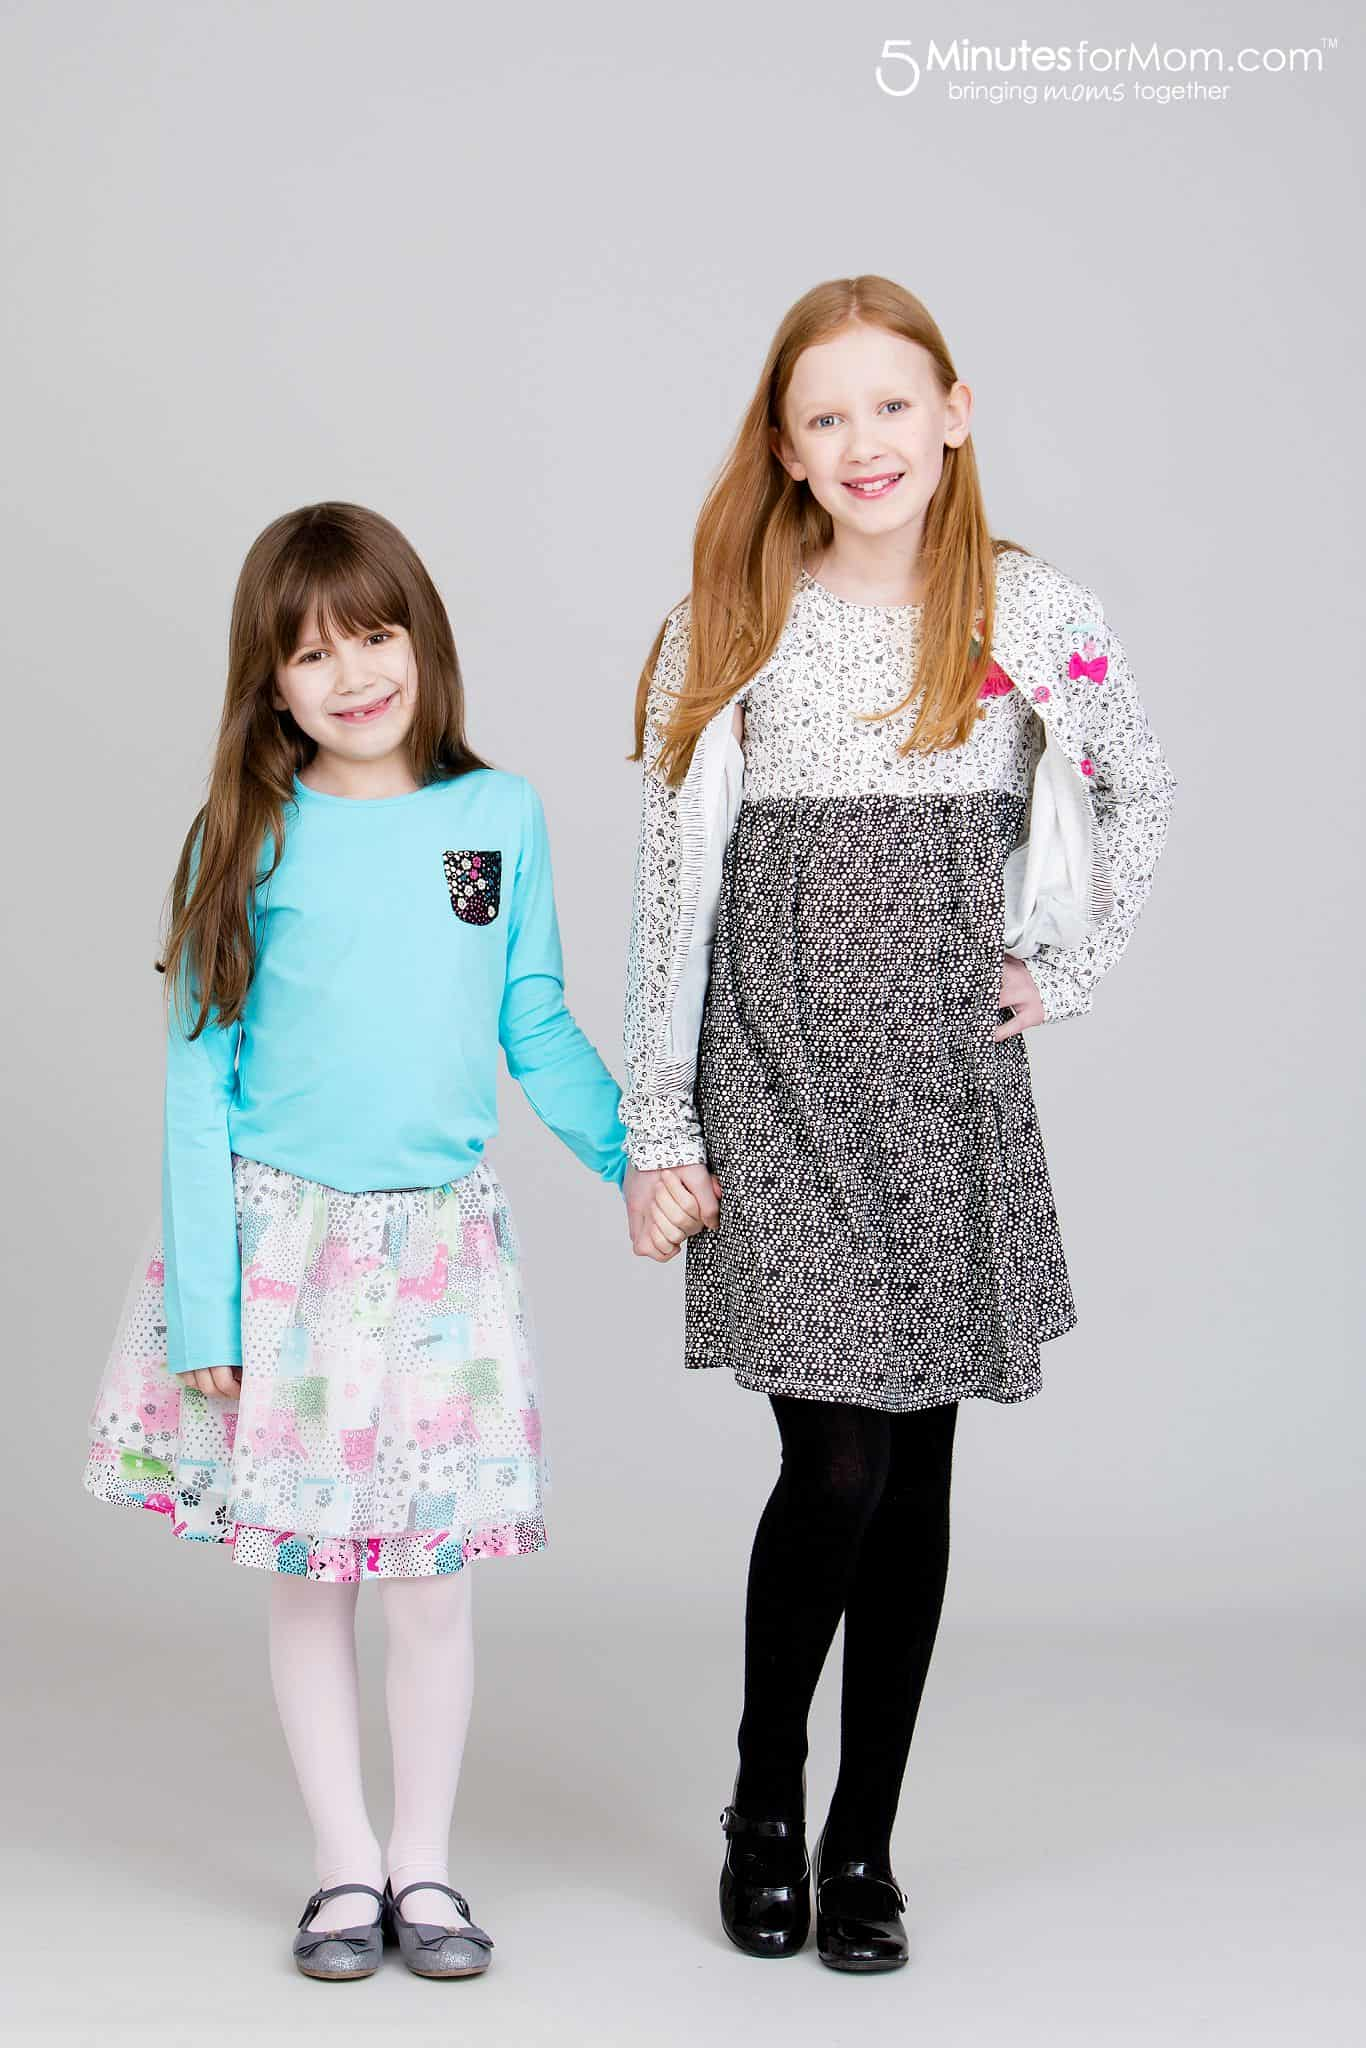 Souris Mini Clothes for Girls